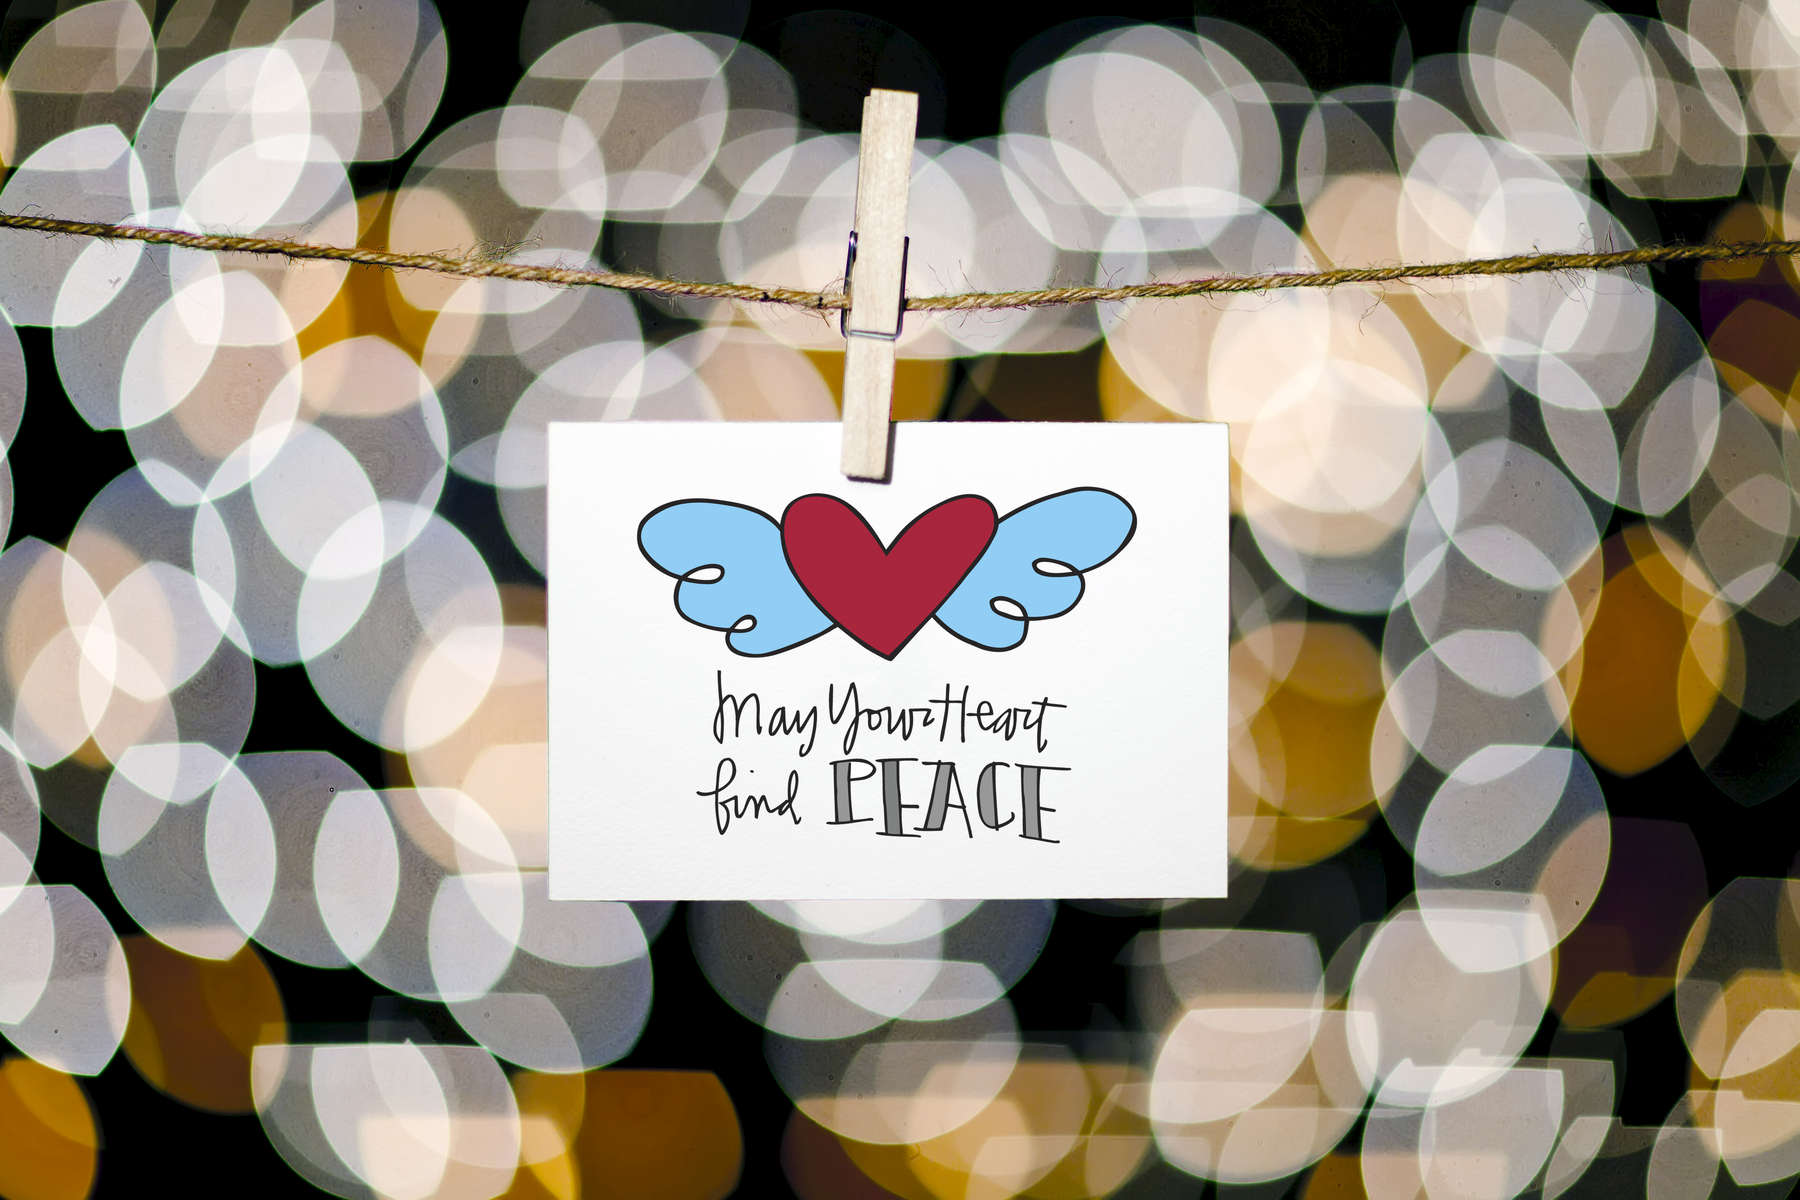 may-your-heart-find-peace-LiGHTS